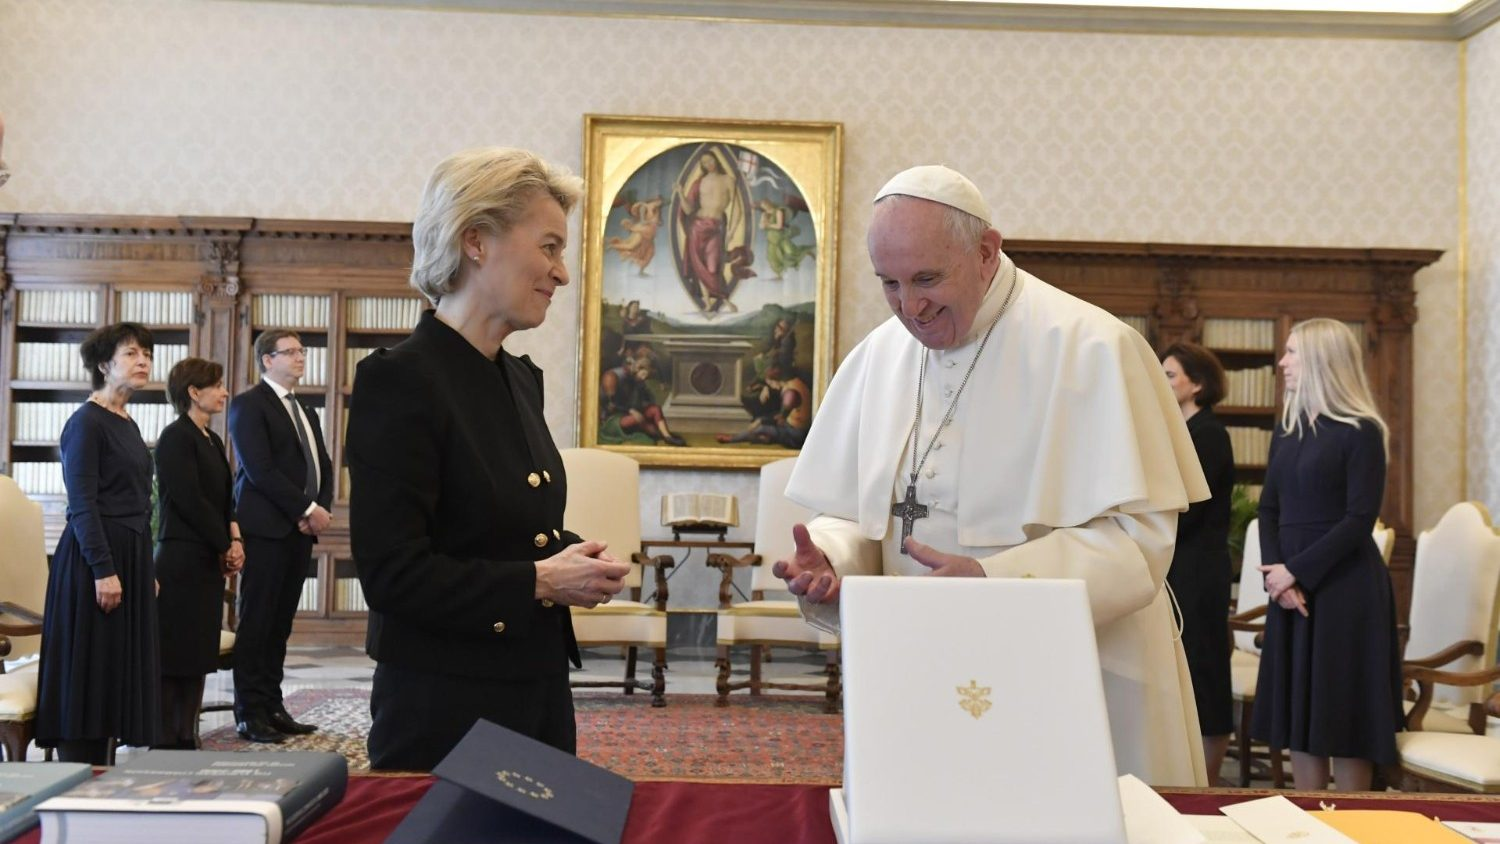 Von der Lein meets the Pope: good cooperation with the Holy See is based on the same values - Vatican News